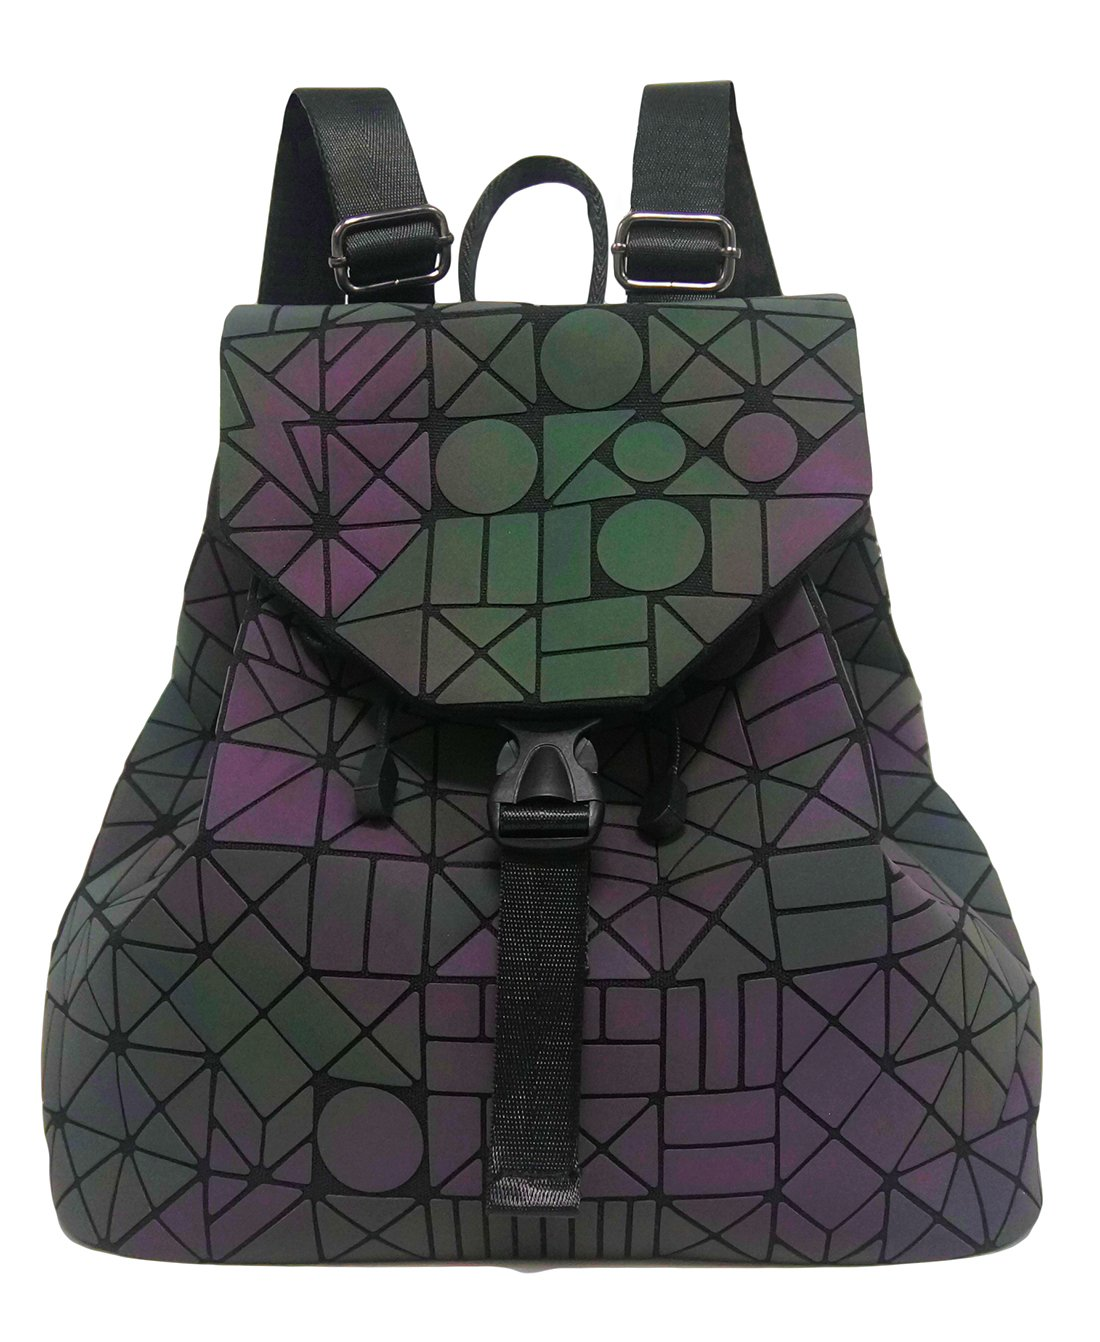 Roffatide Geometric Luminous Rhombus Laser Sequins Backpack Shoulder Bag Satchel Rucksack for Women and Men Flash